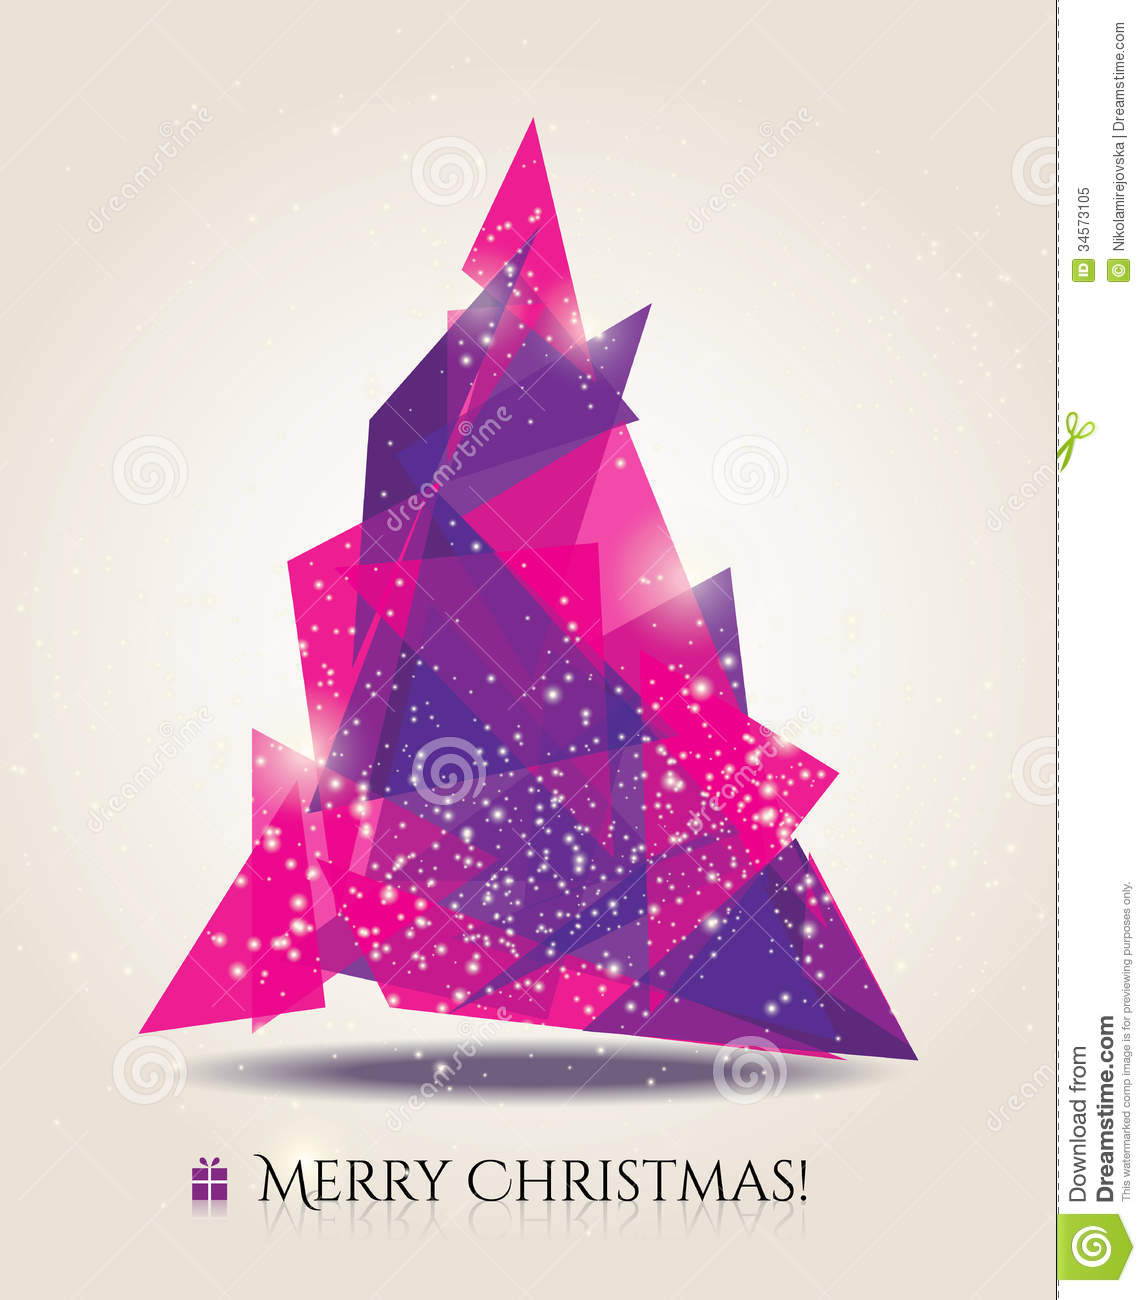 Abstract Christmas Card With Modern Elements Stock